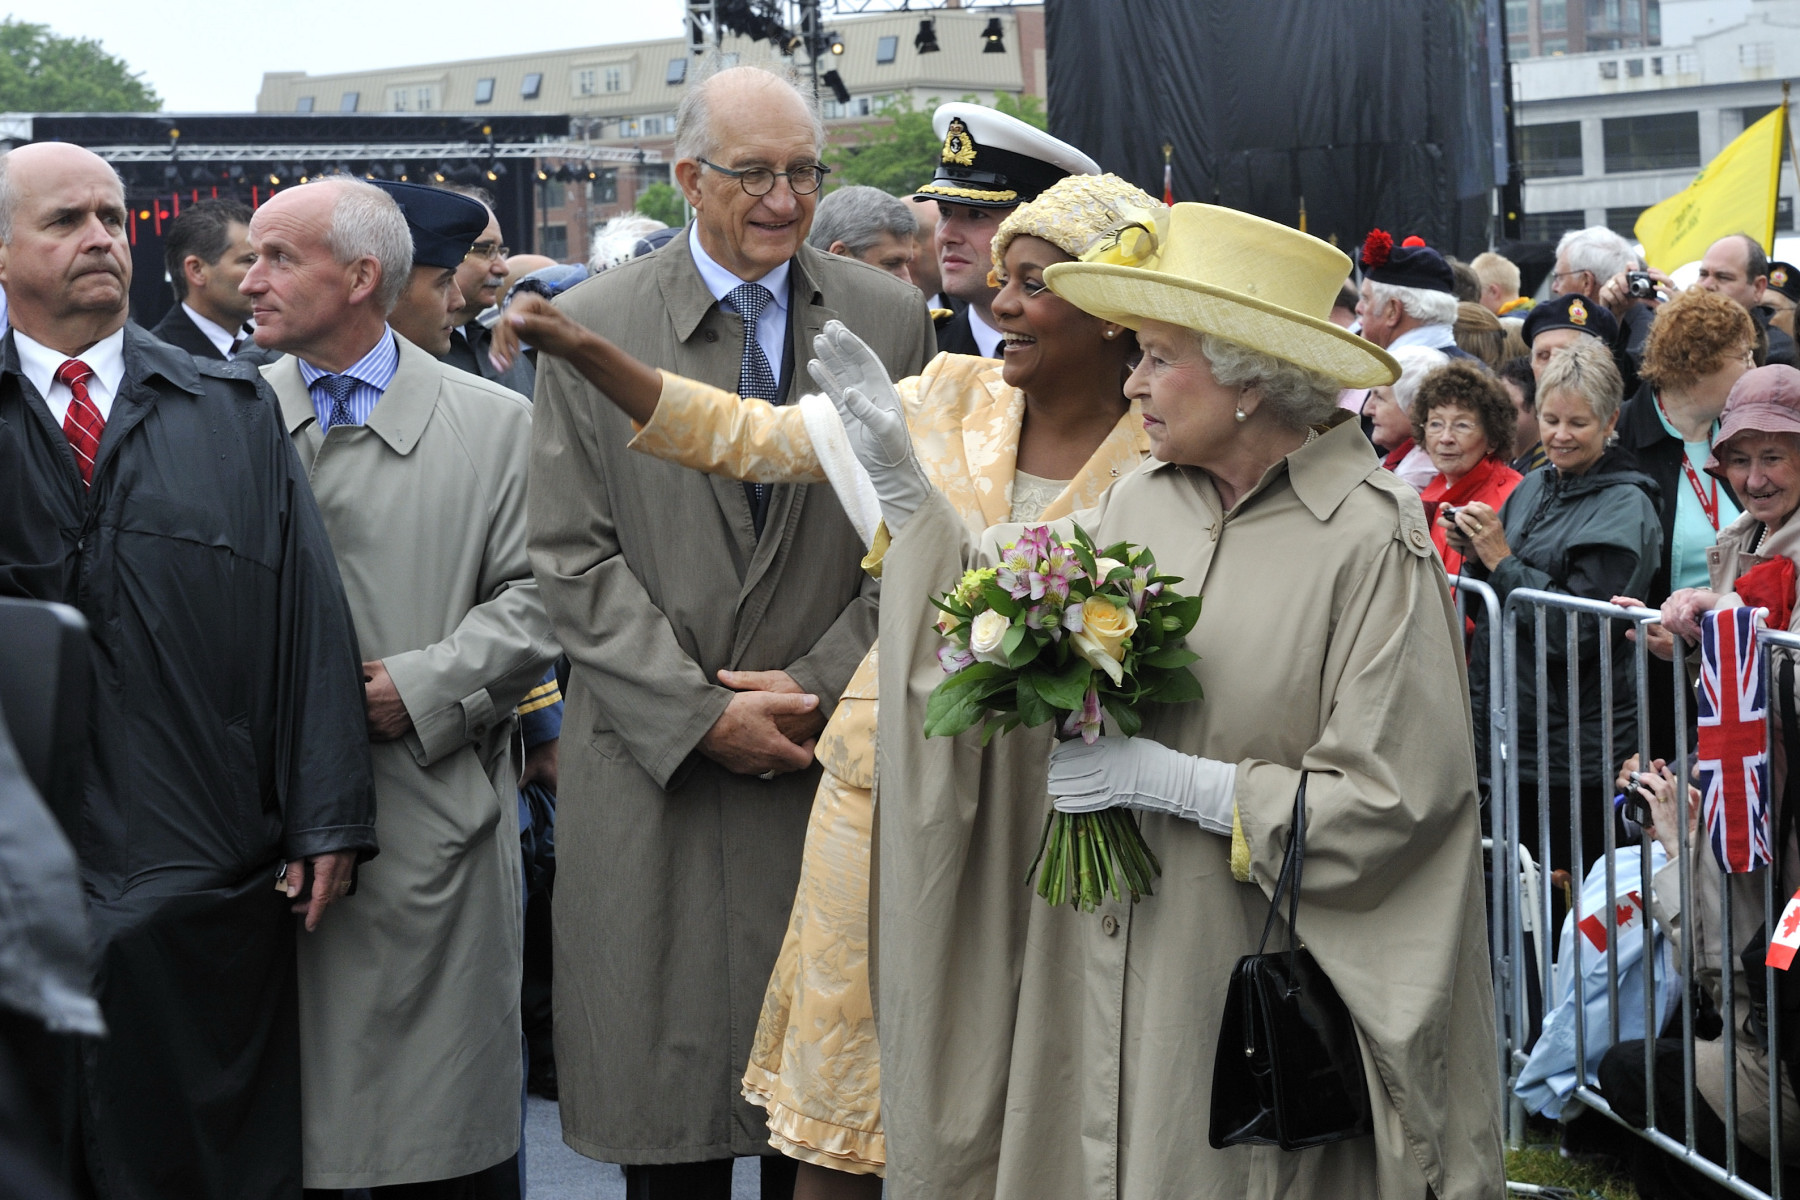 Her Majesty The Queen and Her Excellency the Governor General waved to the crowd.